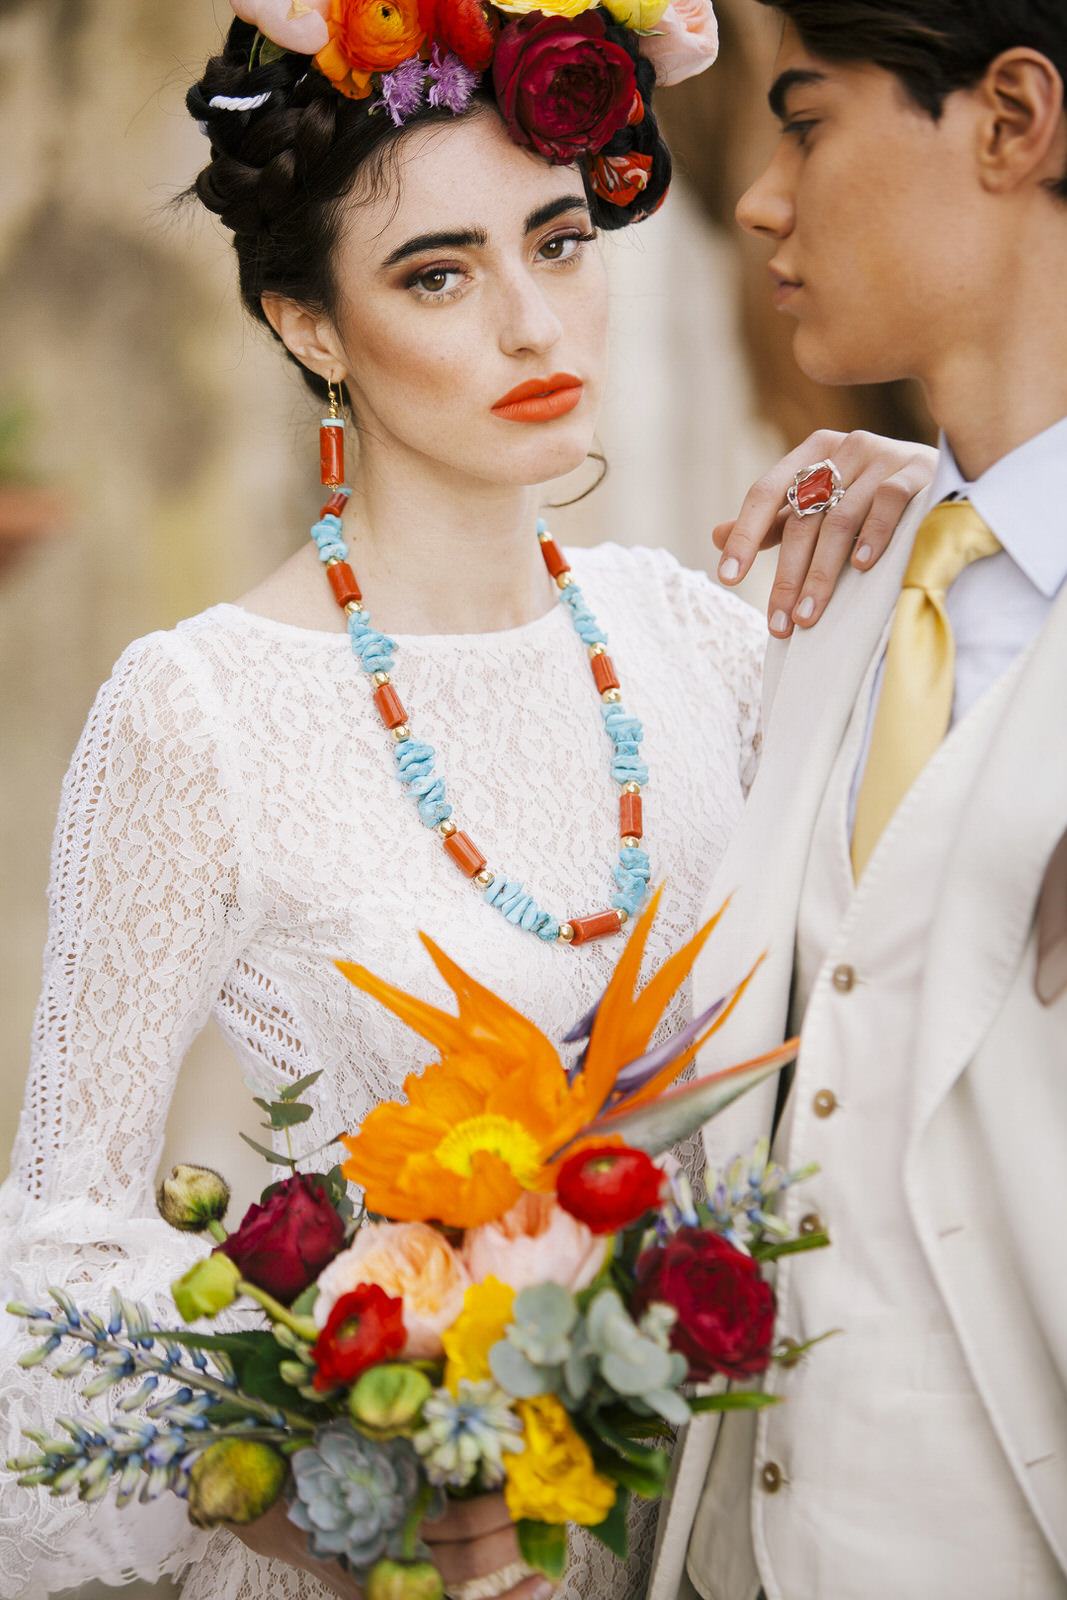 bride and groom's portrait with a colorful bouquet